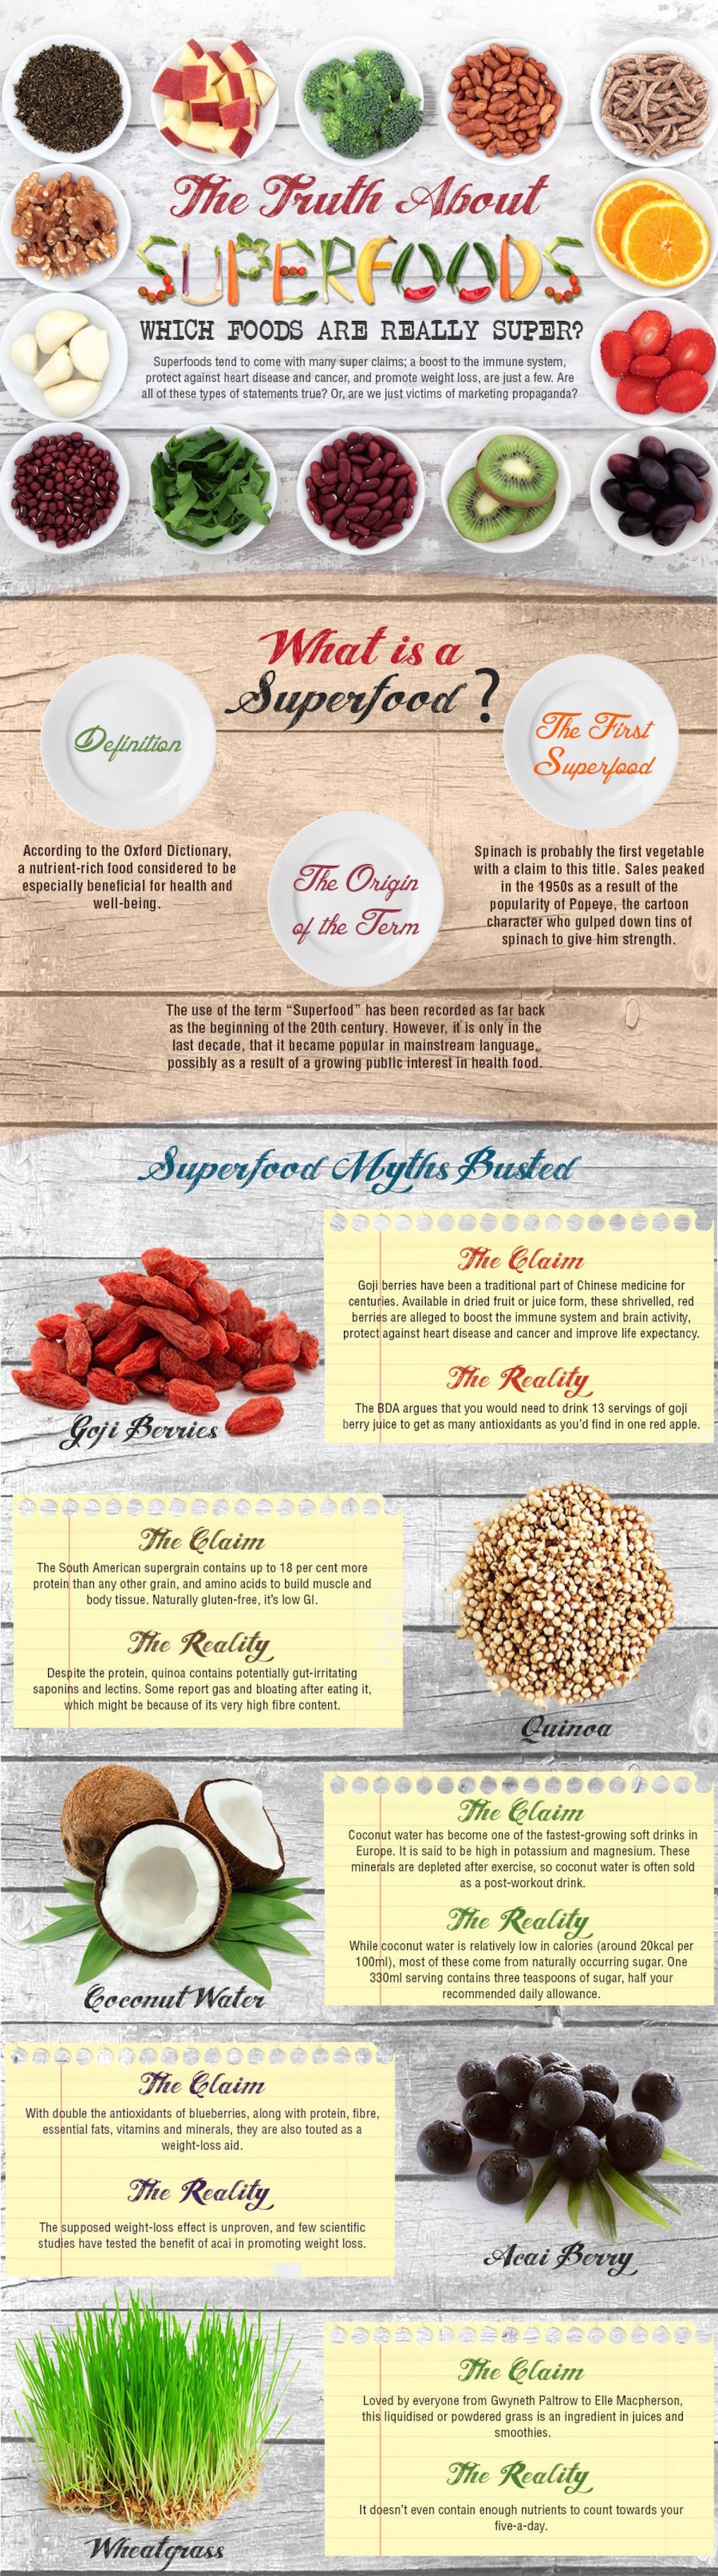 infographic--the-truth-about-superfoods 1